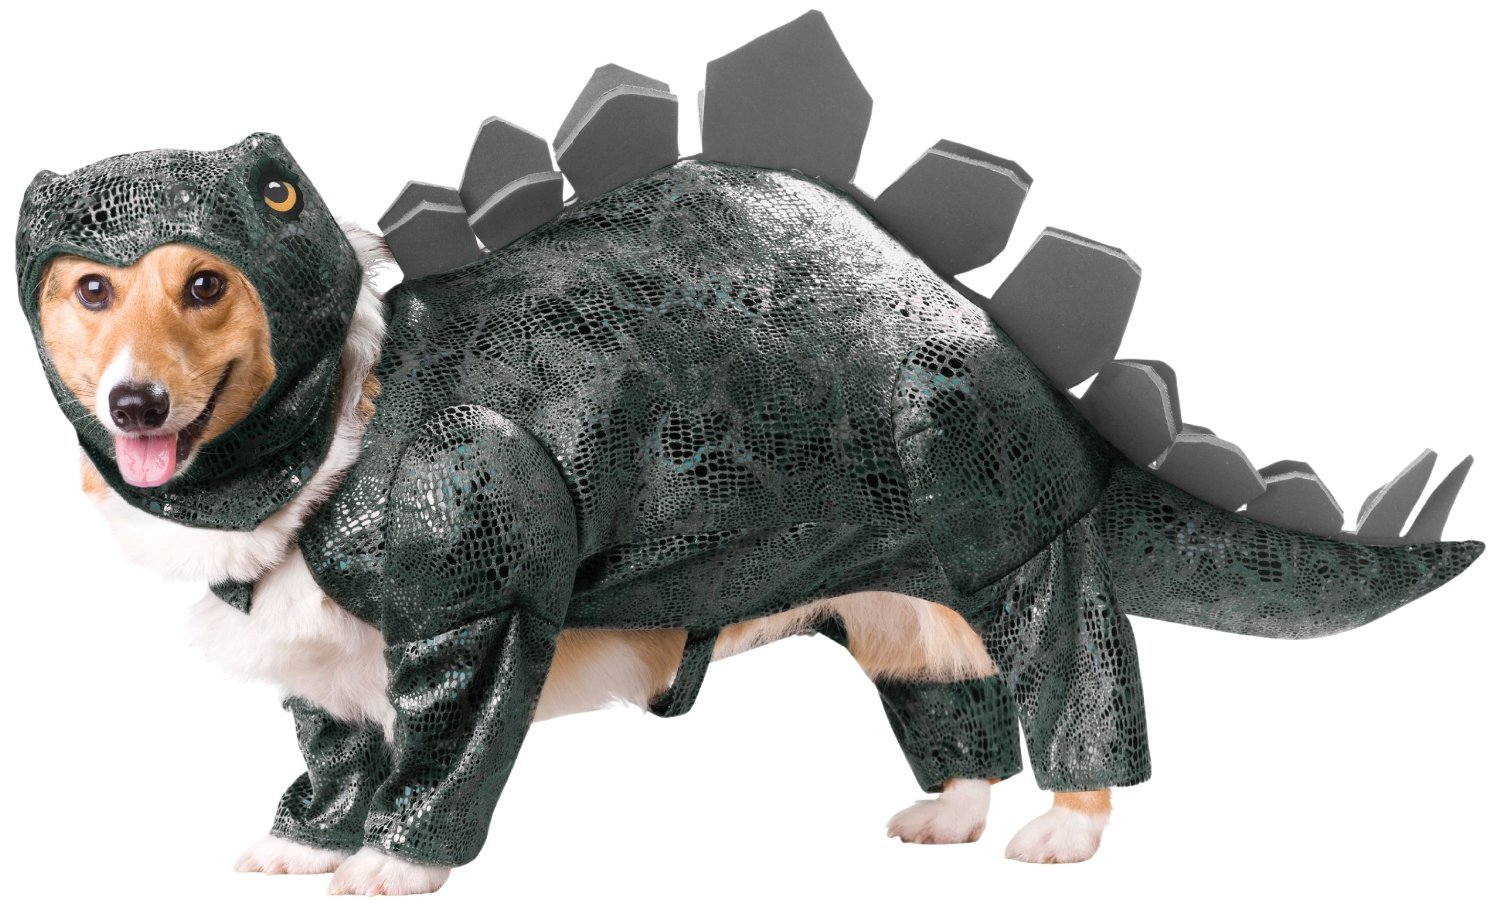 Dinosaur Dog Best Pet Halloween Costume for 2012